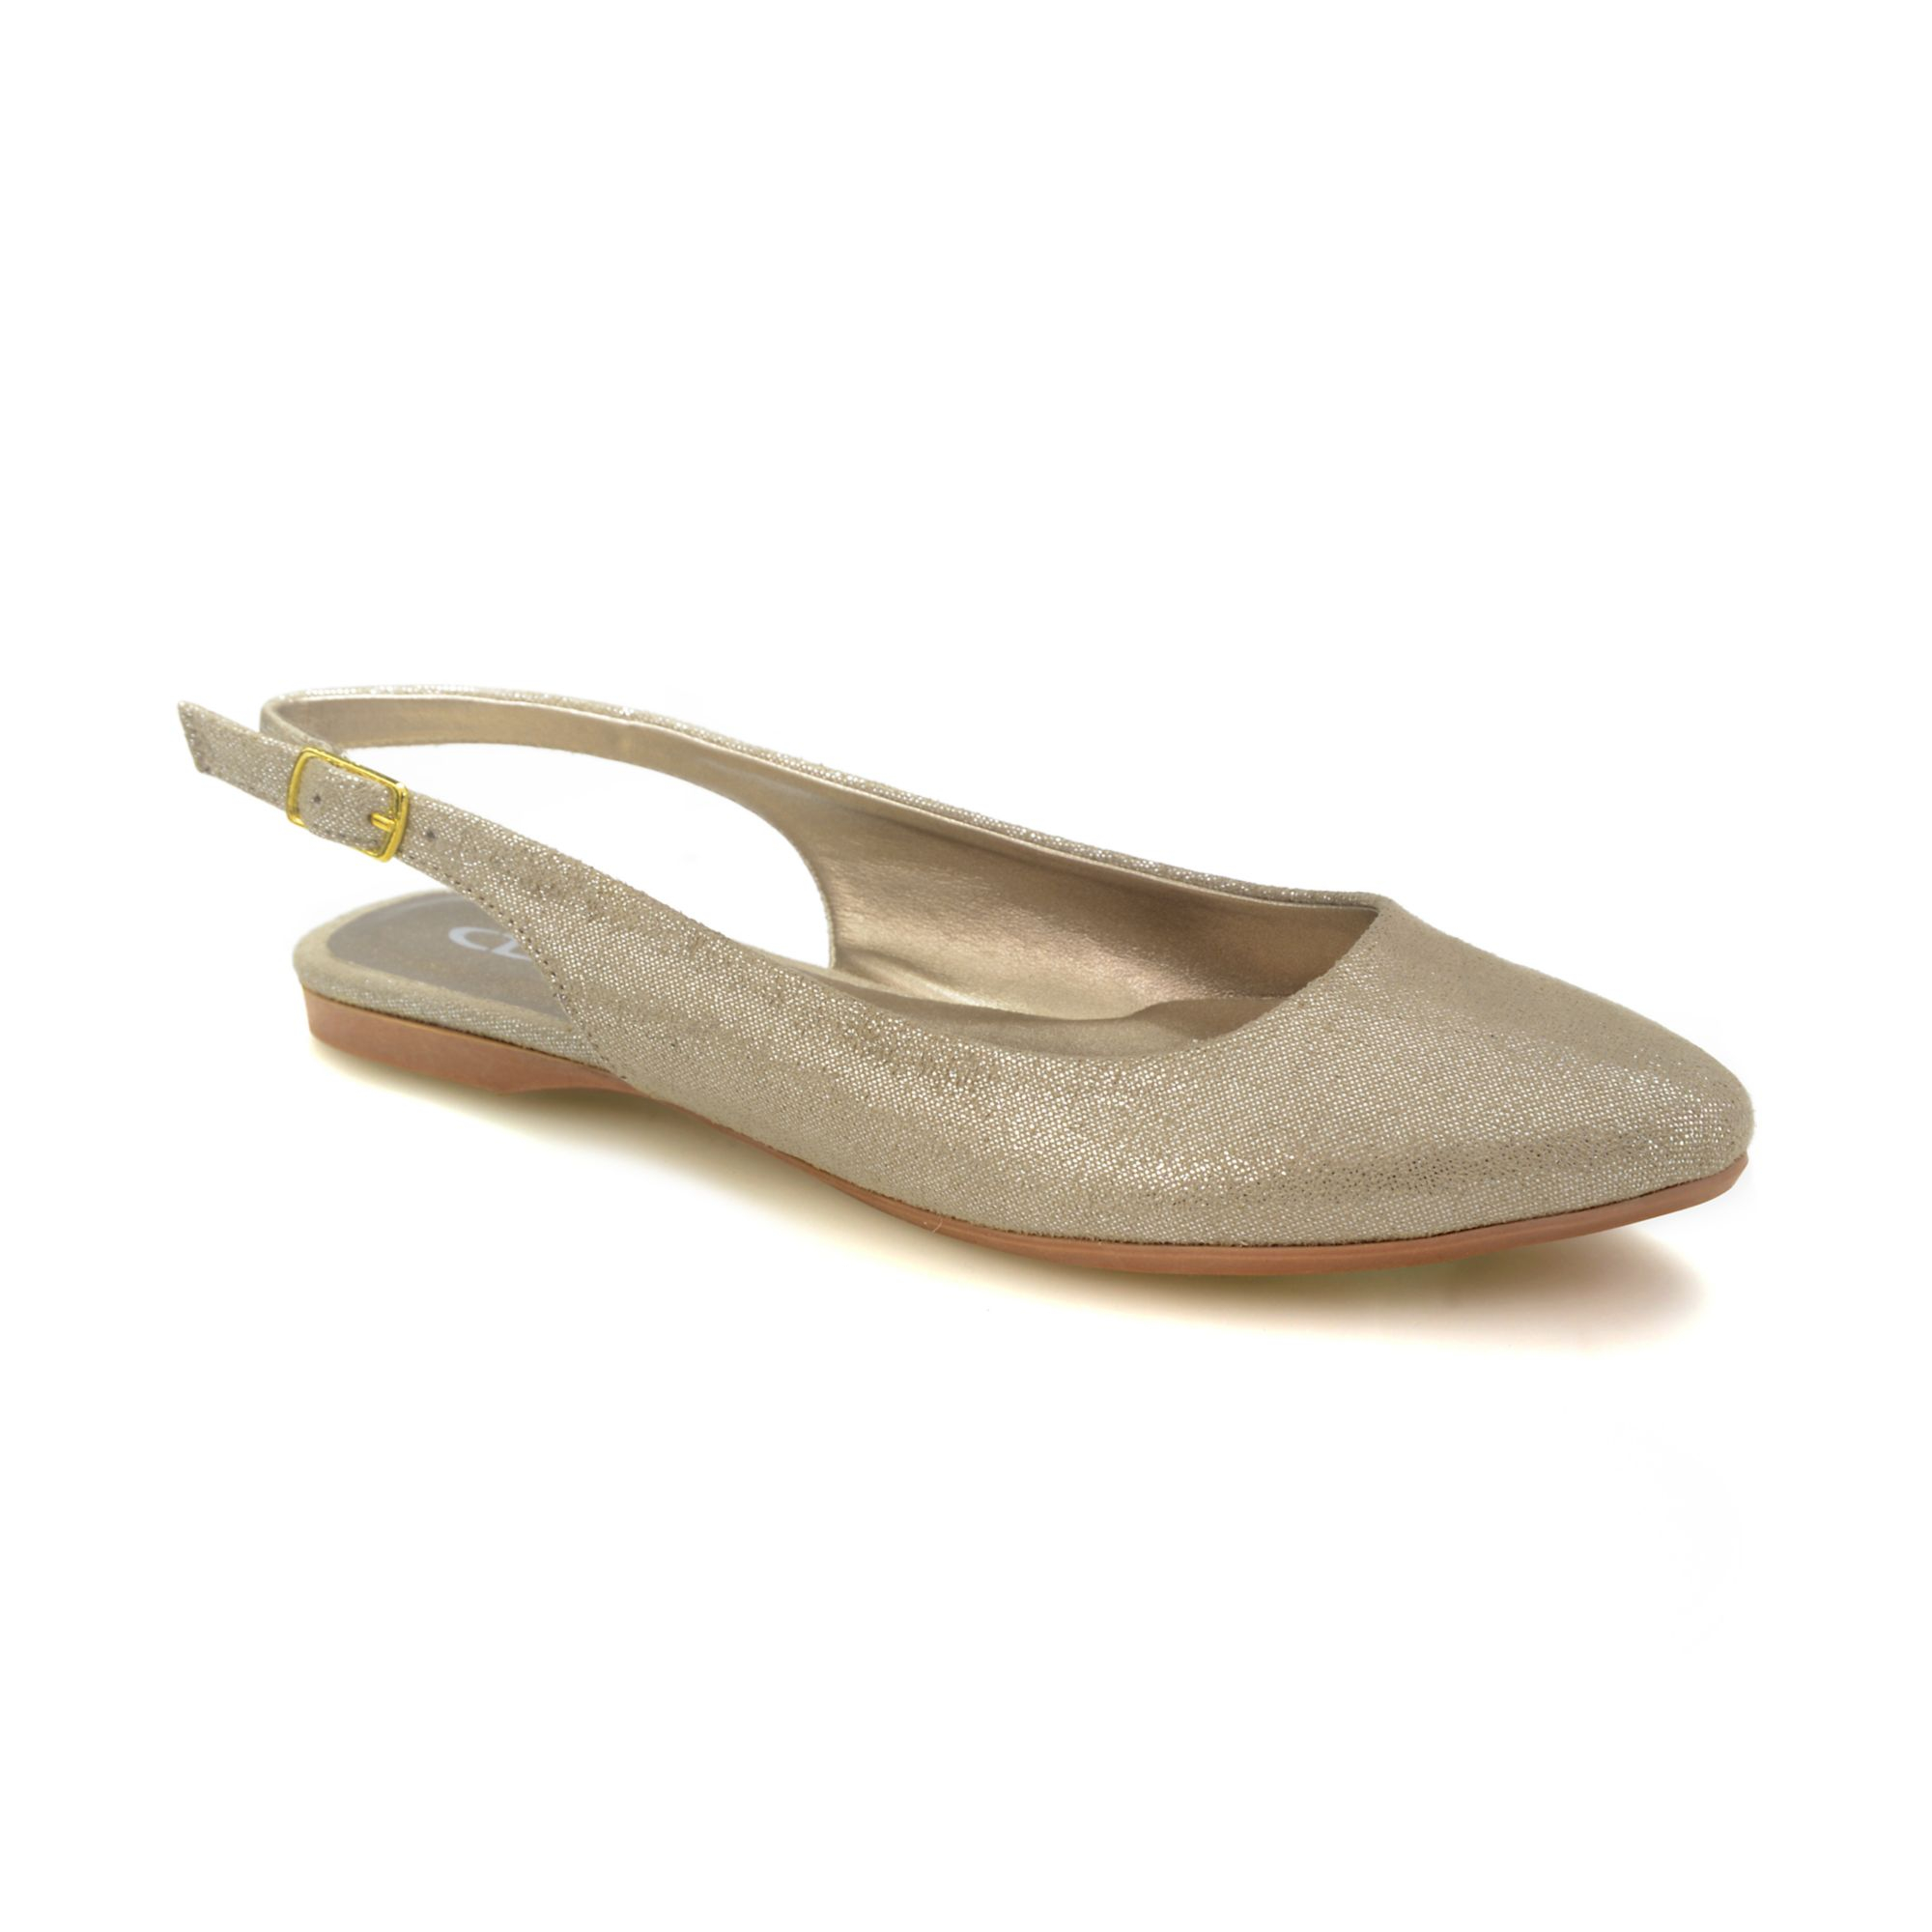 Lyst Chinese Laundry Brilliance Slingback Flats In Metallic